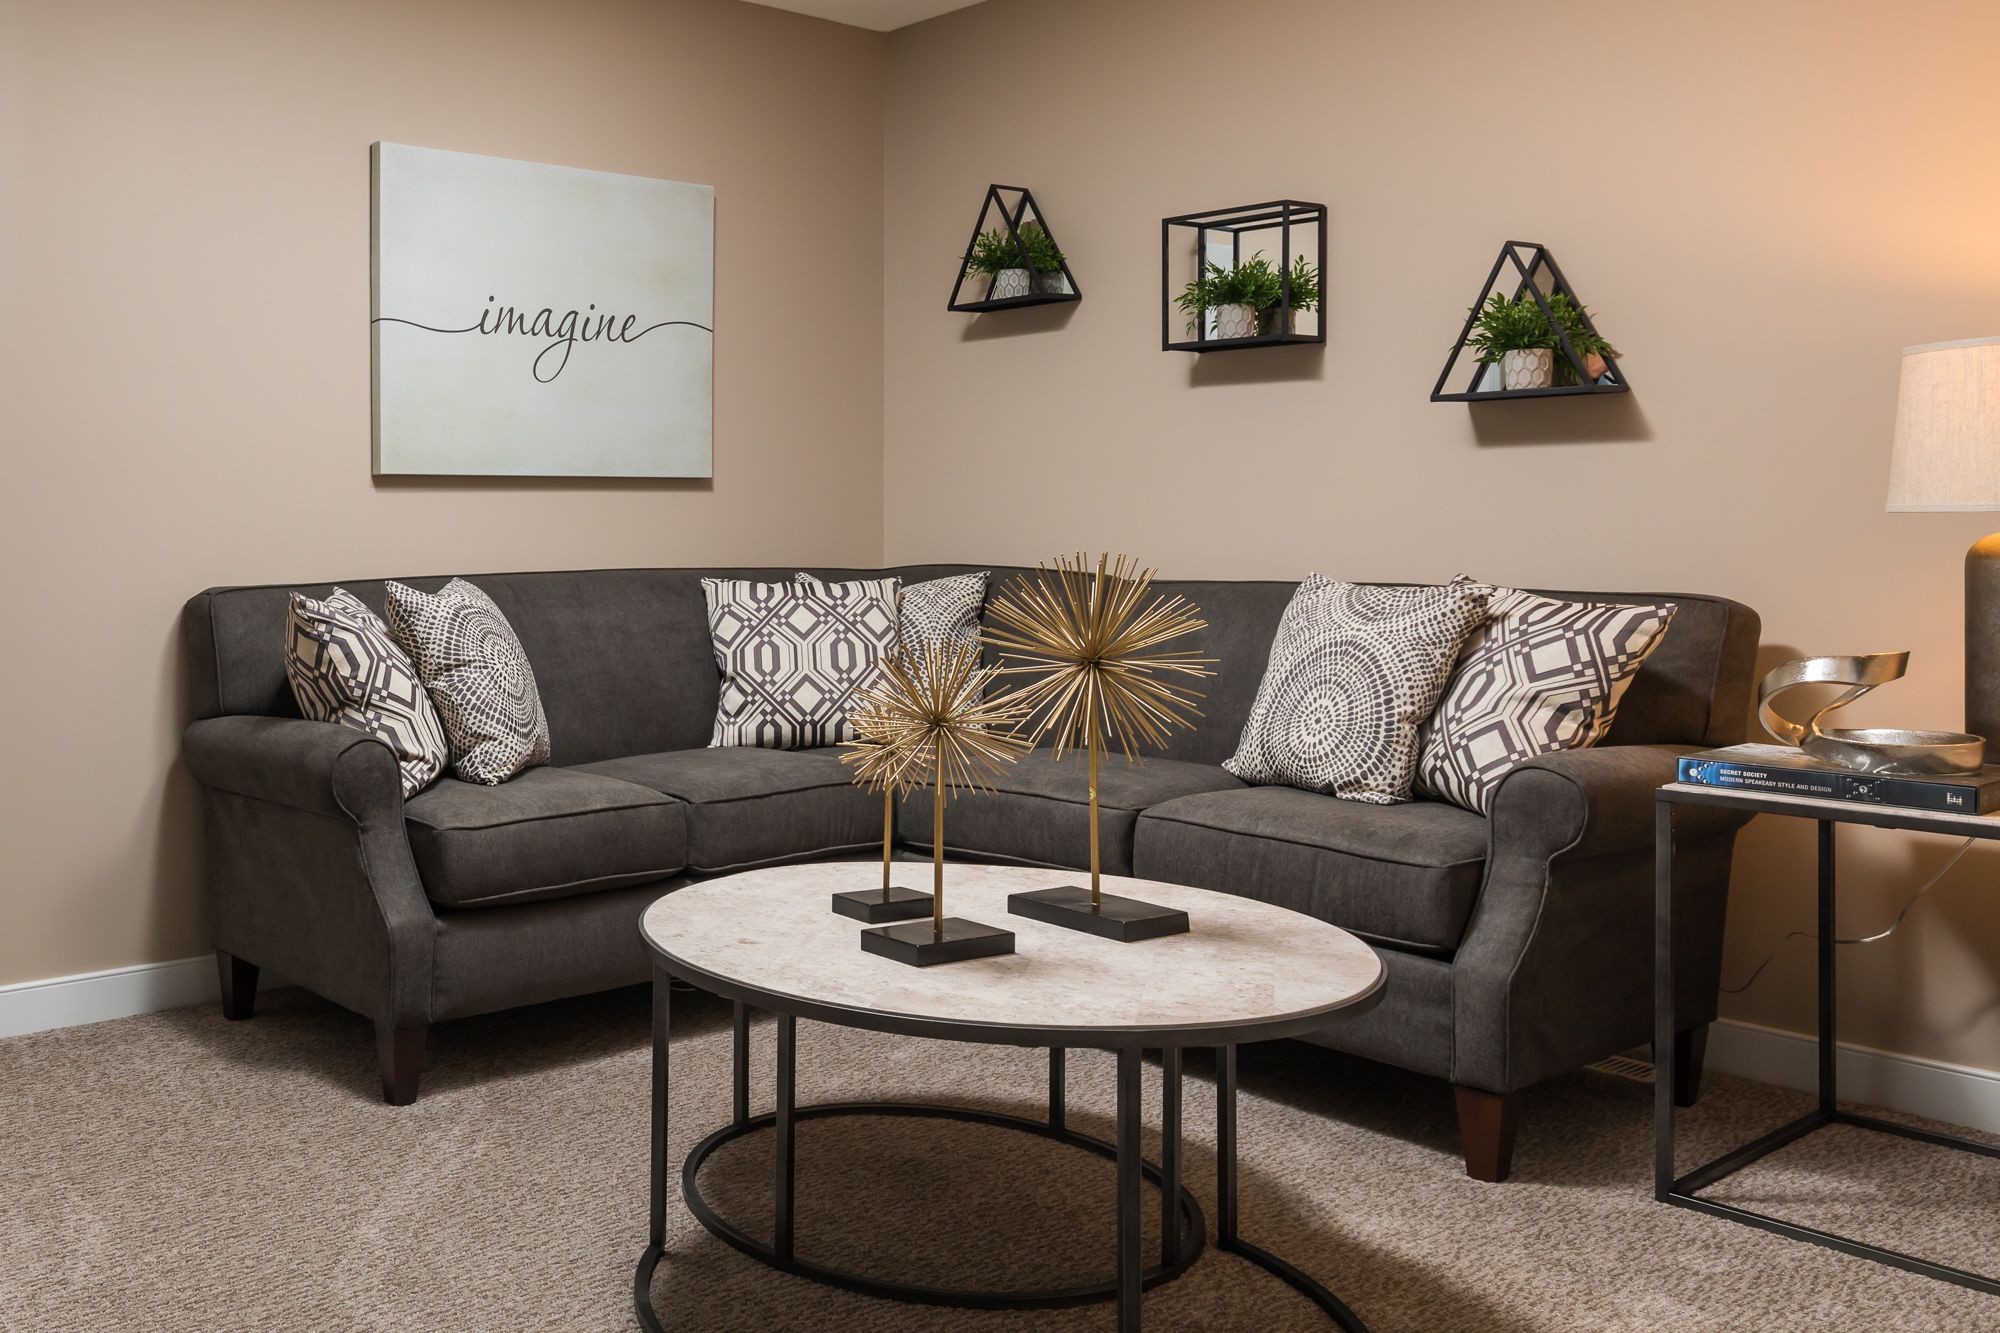 Living Area featured in the Elements 2600 By Allen Edwin Homes in Benton Harbor, MI